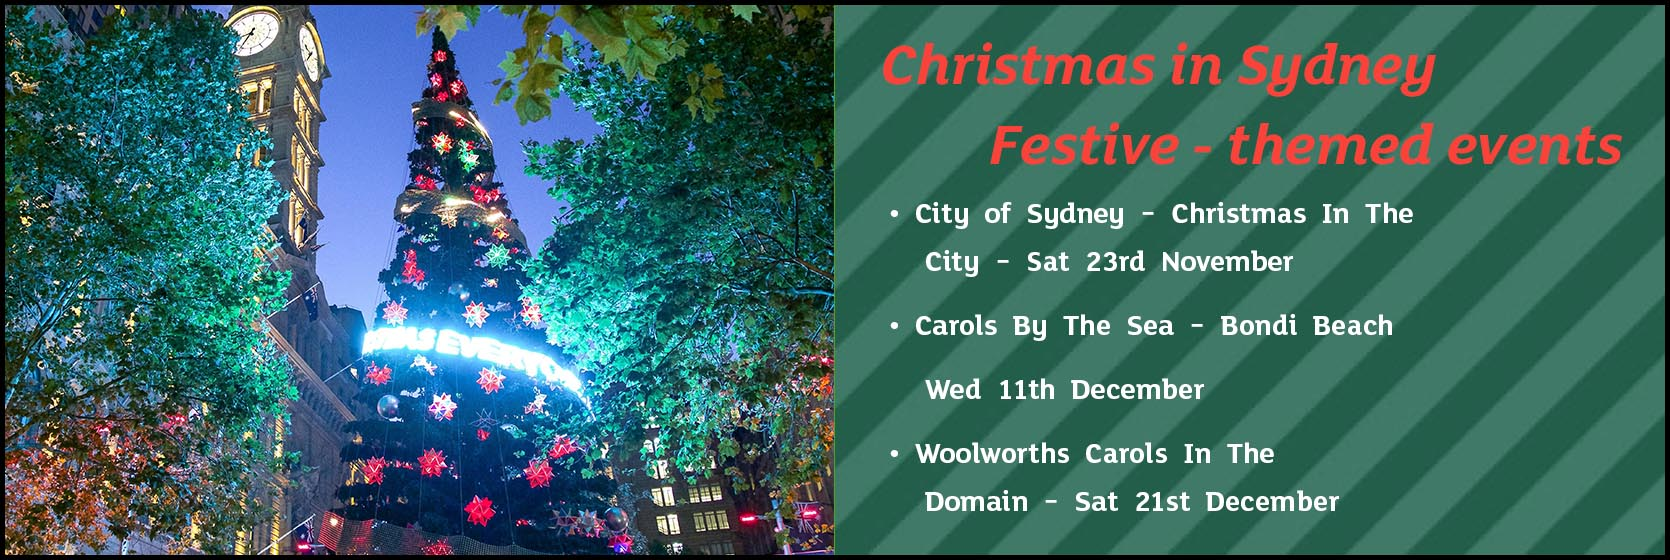 Christmas themes events in Sydney, 2019